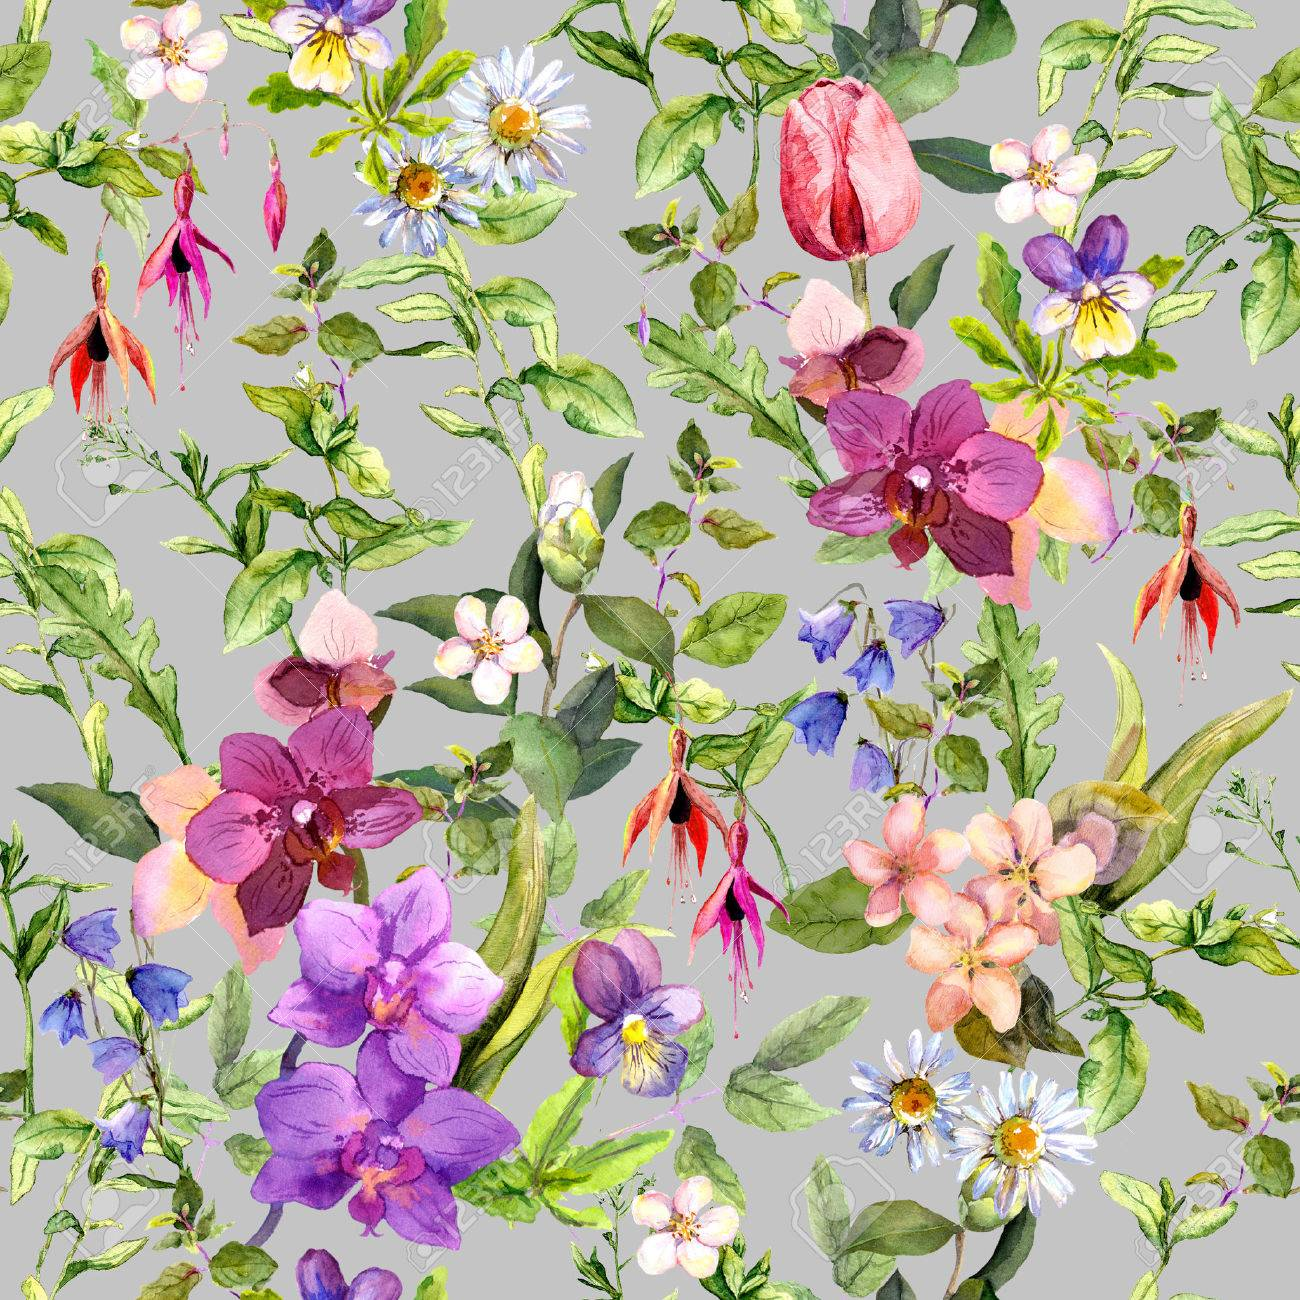 Ditsy Flowers And Wild Herbs   Summer Garden. Vintage Seamless Floral And  Herbal Pattern.